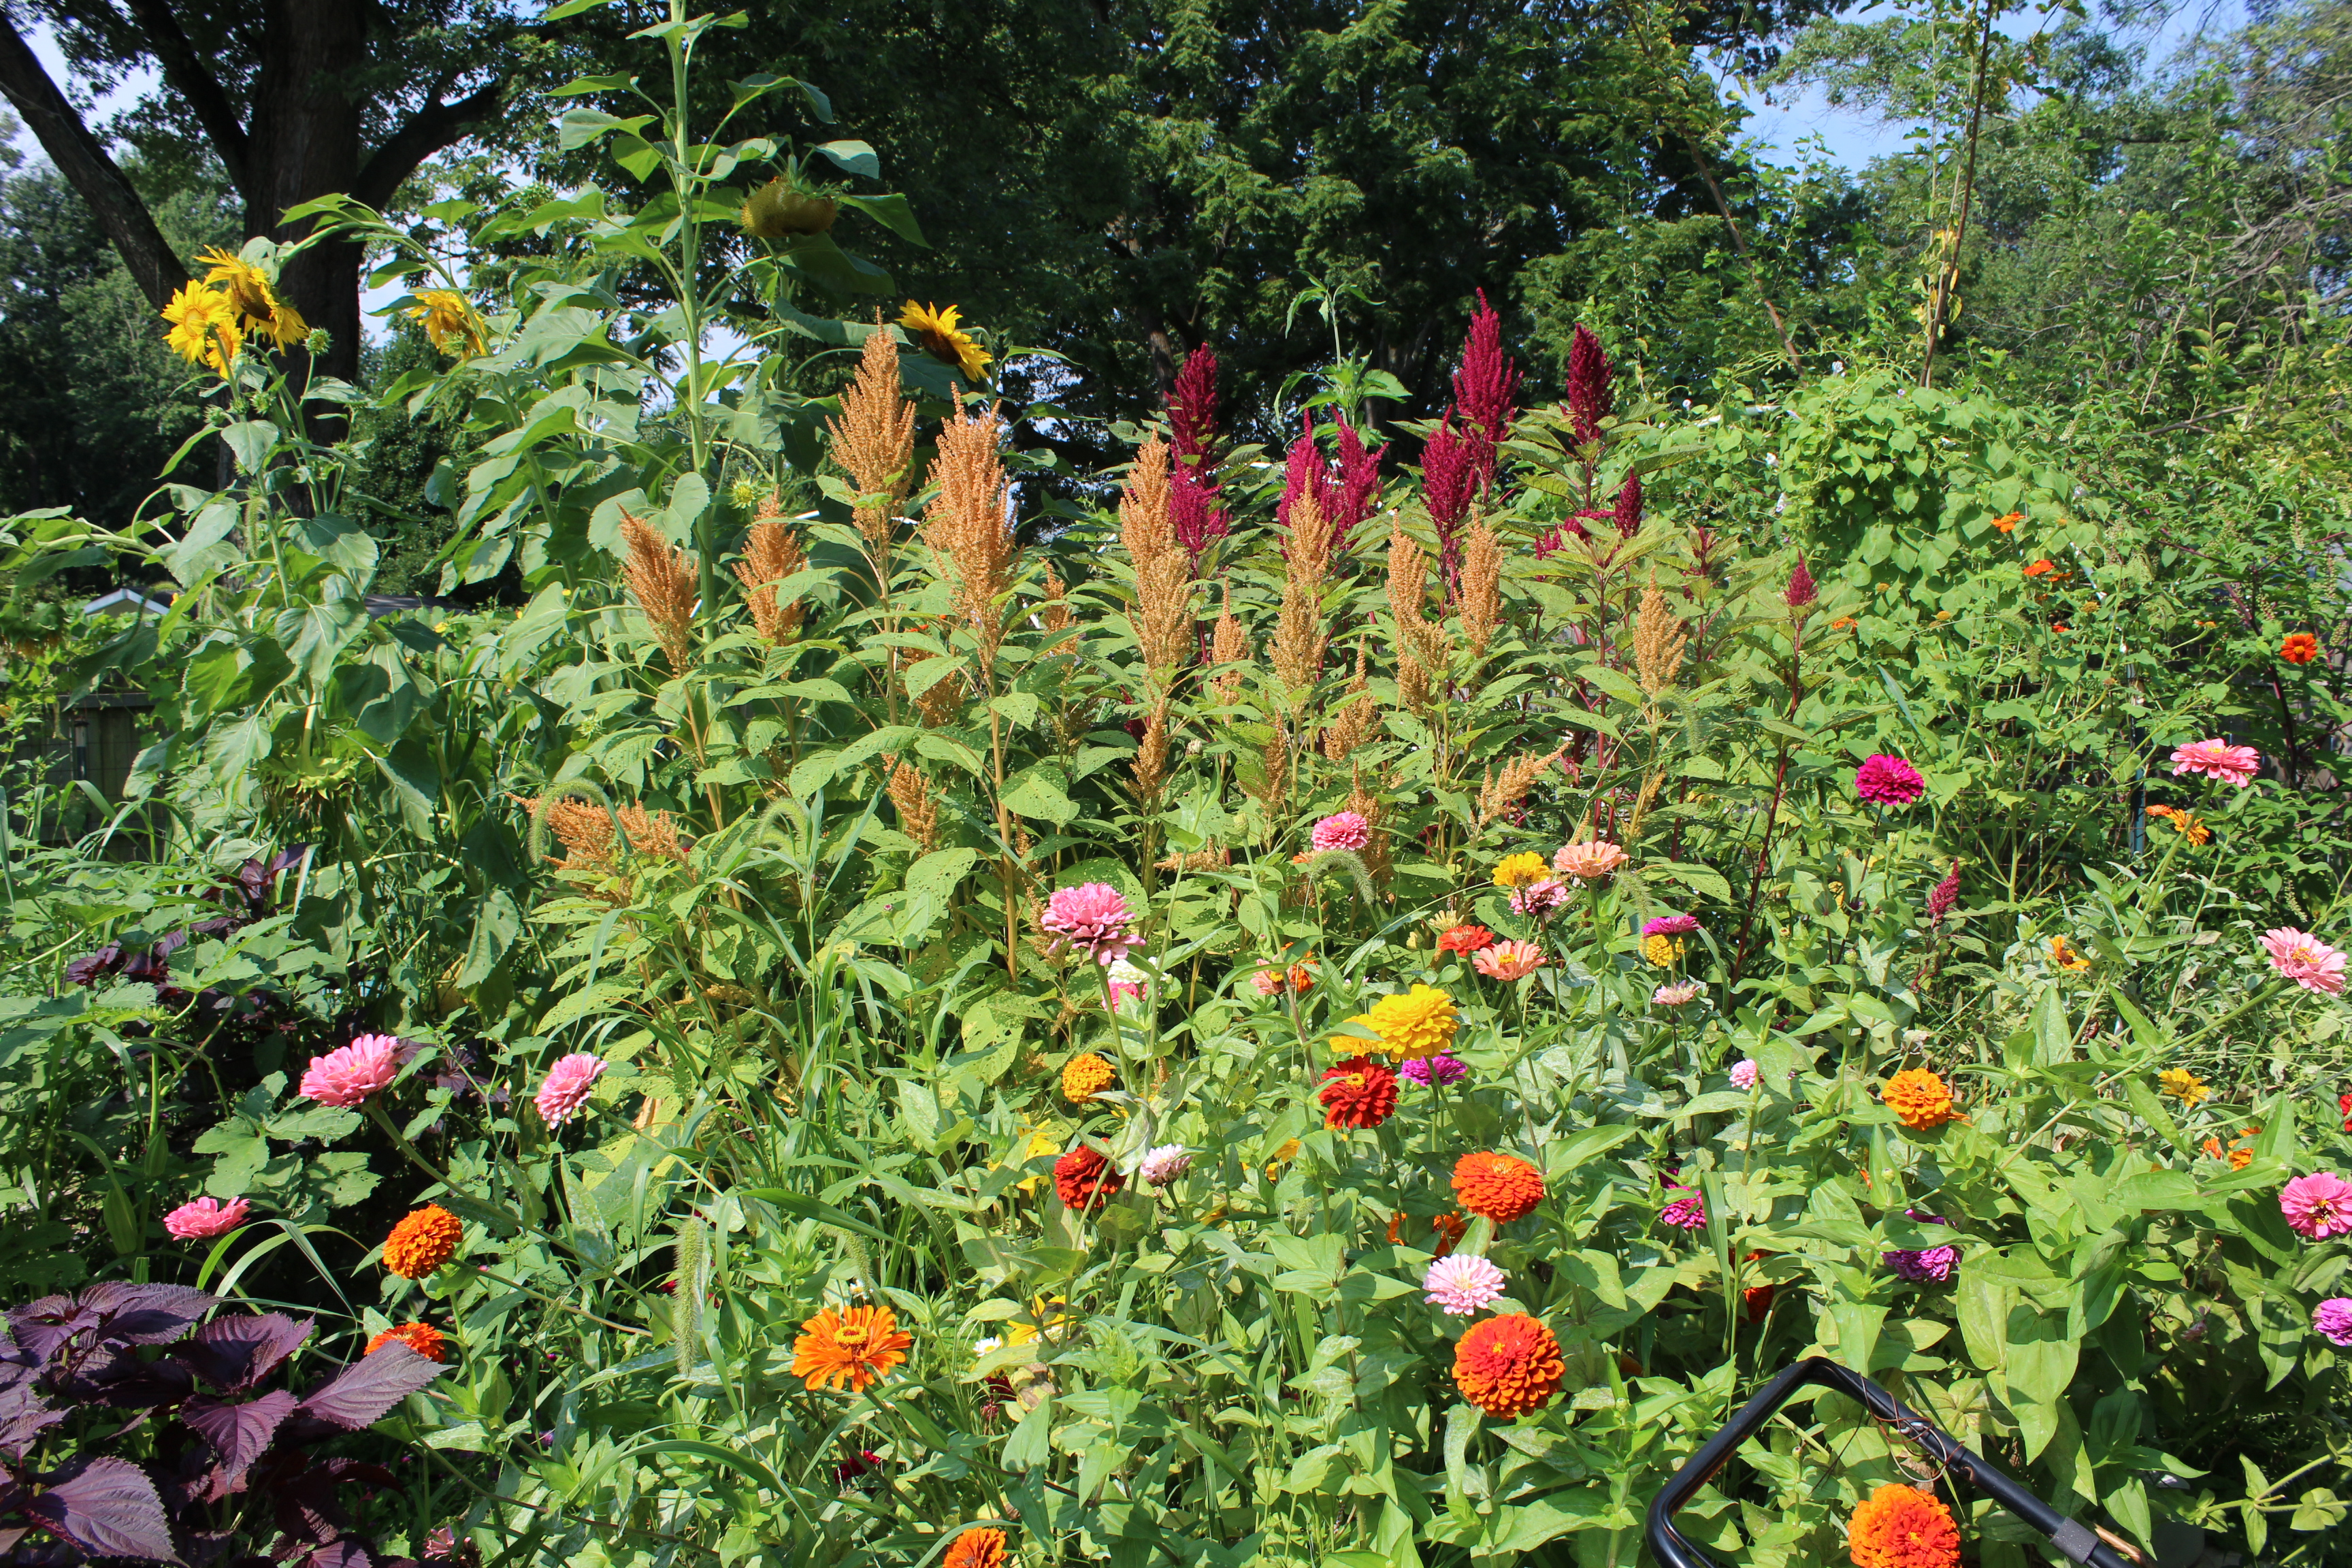 Growing flowers from seed practical advice for seed starting first year flower growers will likely want to compose the majority of their cutting garden of annuals these fast growing plants will quickly fill beds and izmirmasajfo